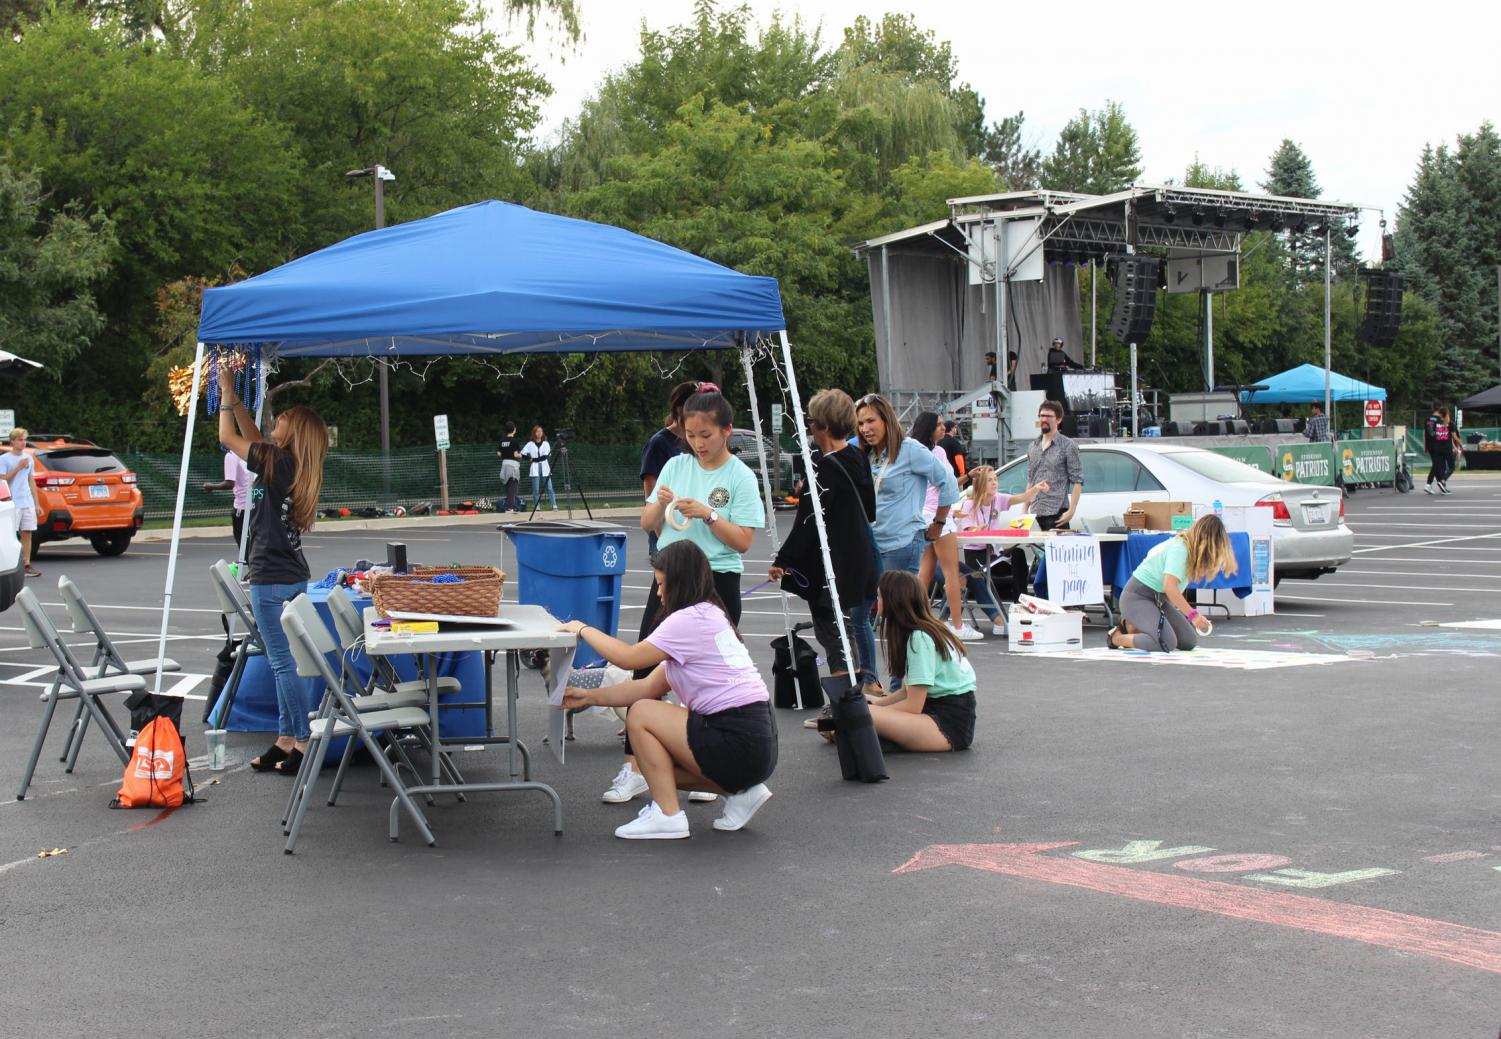 Students+help+set+up+the+Turning+the+Page+booth.+Each+of+Streetfest%27s+organizations+were+featured+at+a+booth+equipped+with+activities%2C+and+donation+opportunities.+